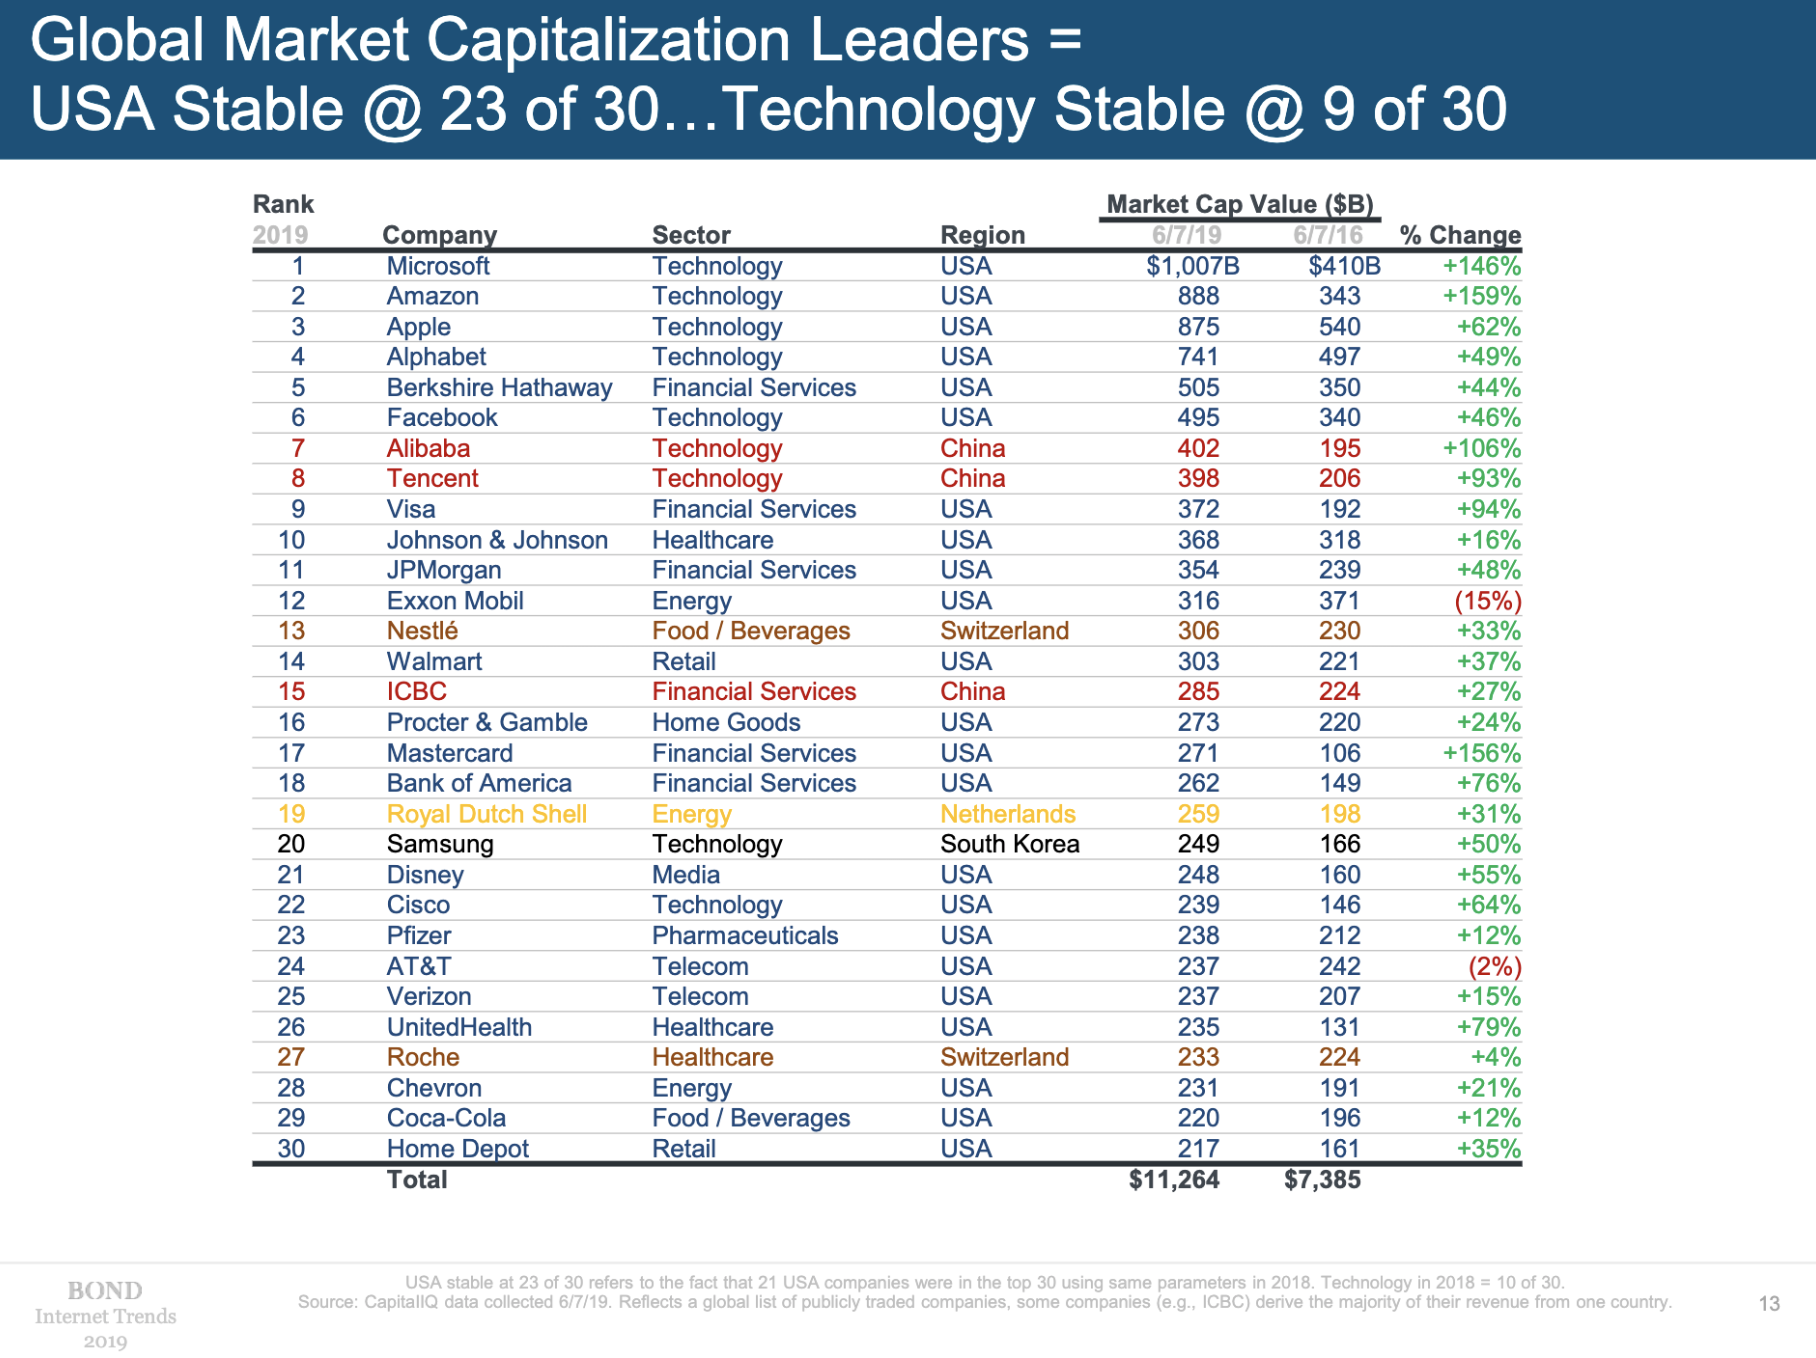 Global Market Cap leaders